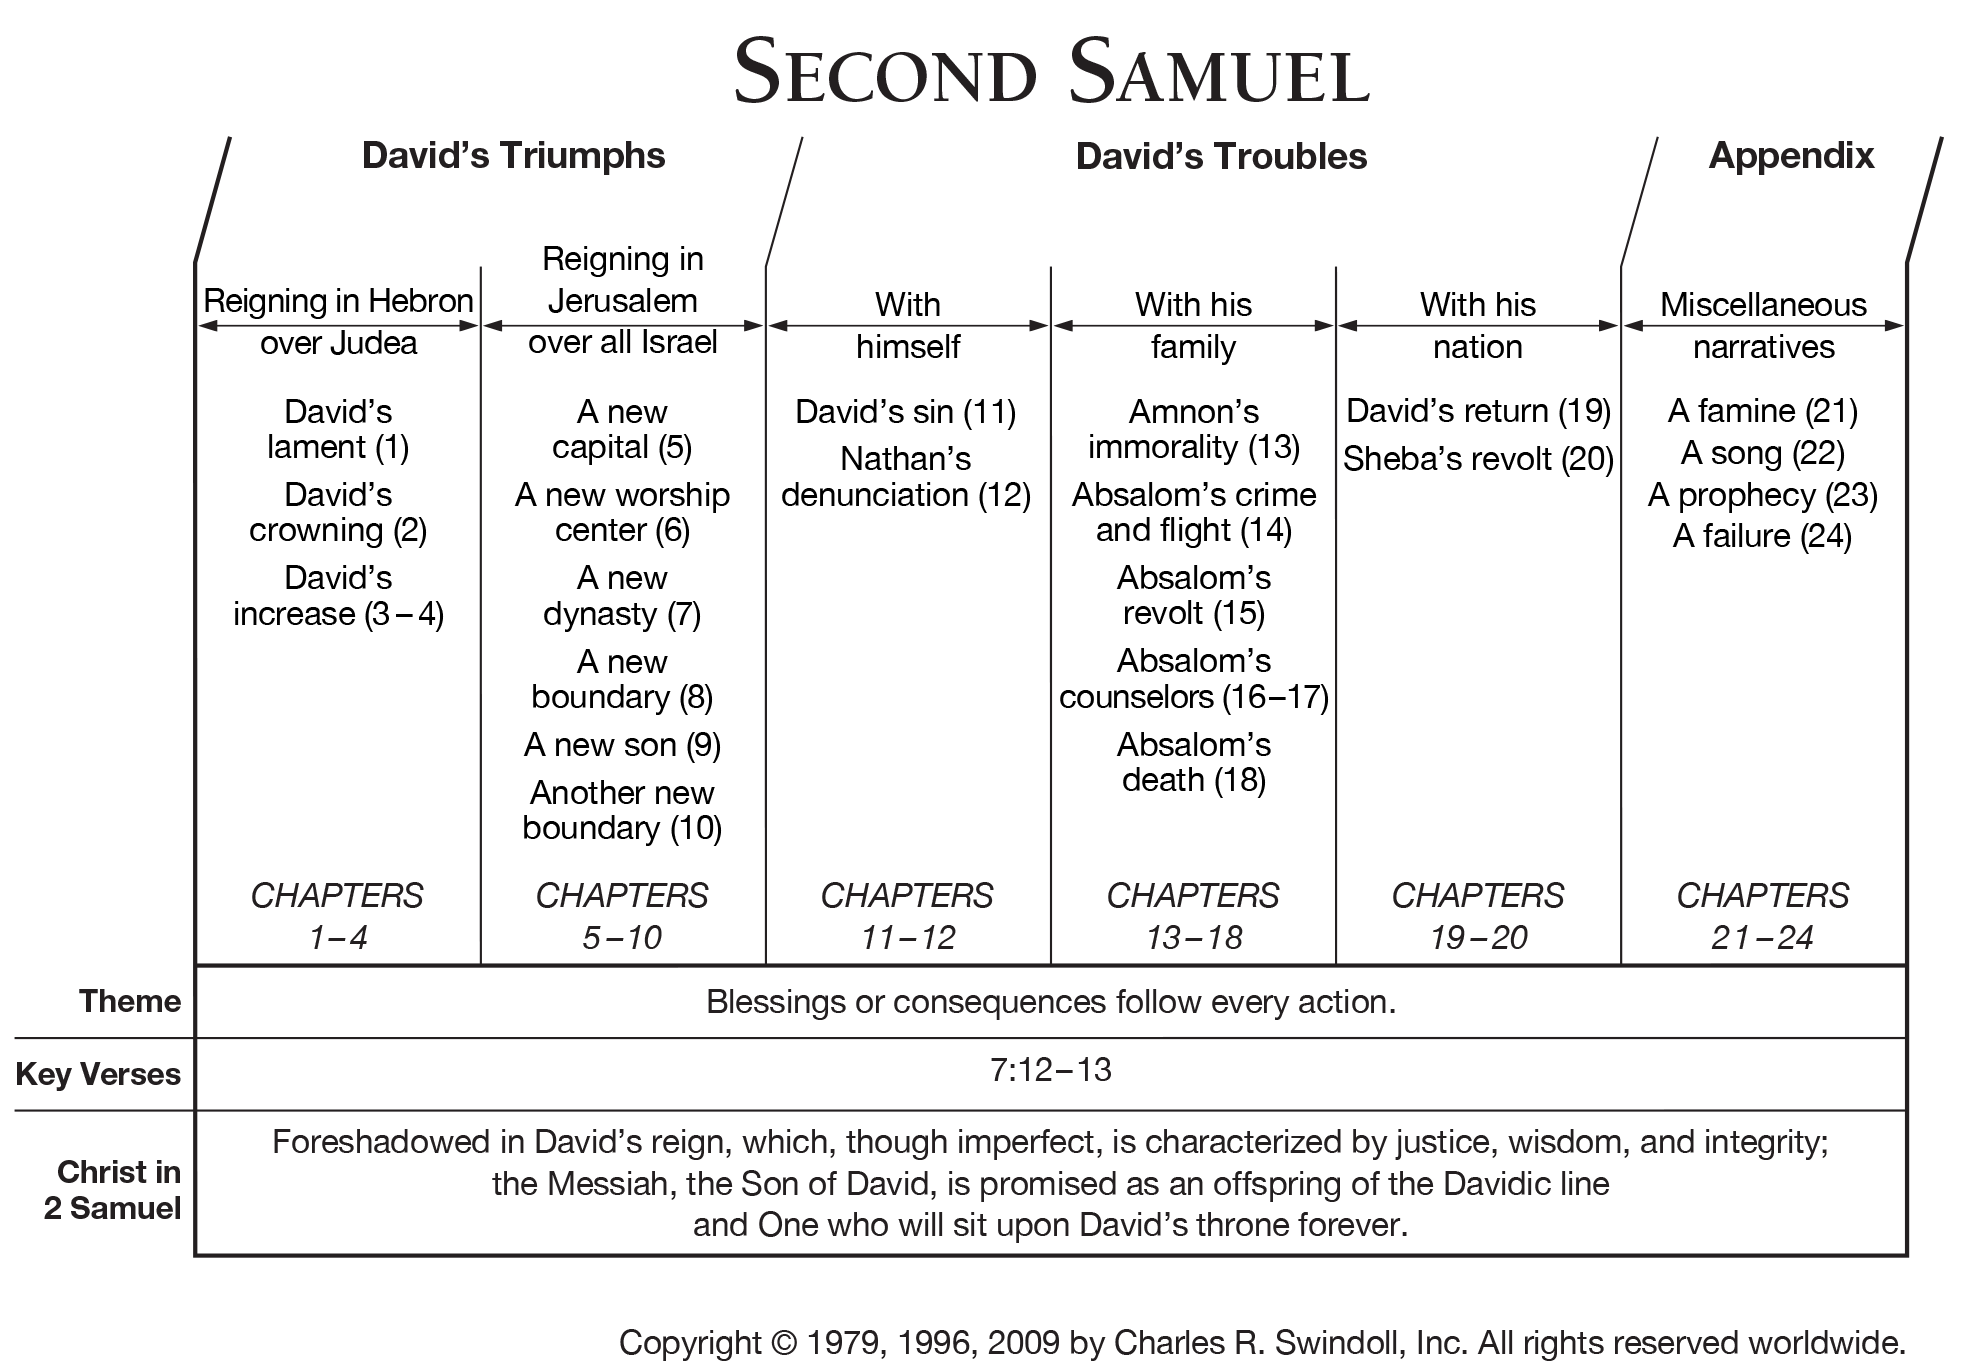 Book Of Second Samuel Overview